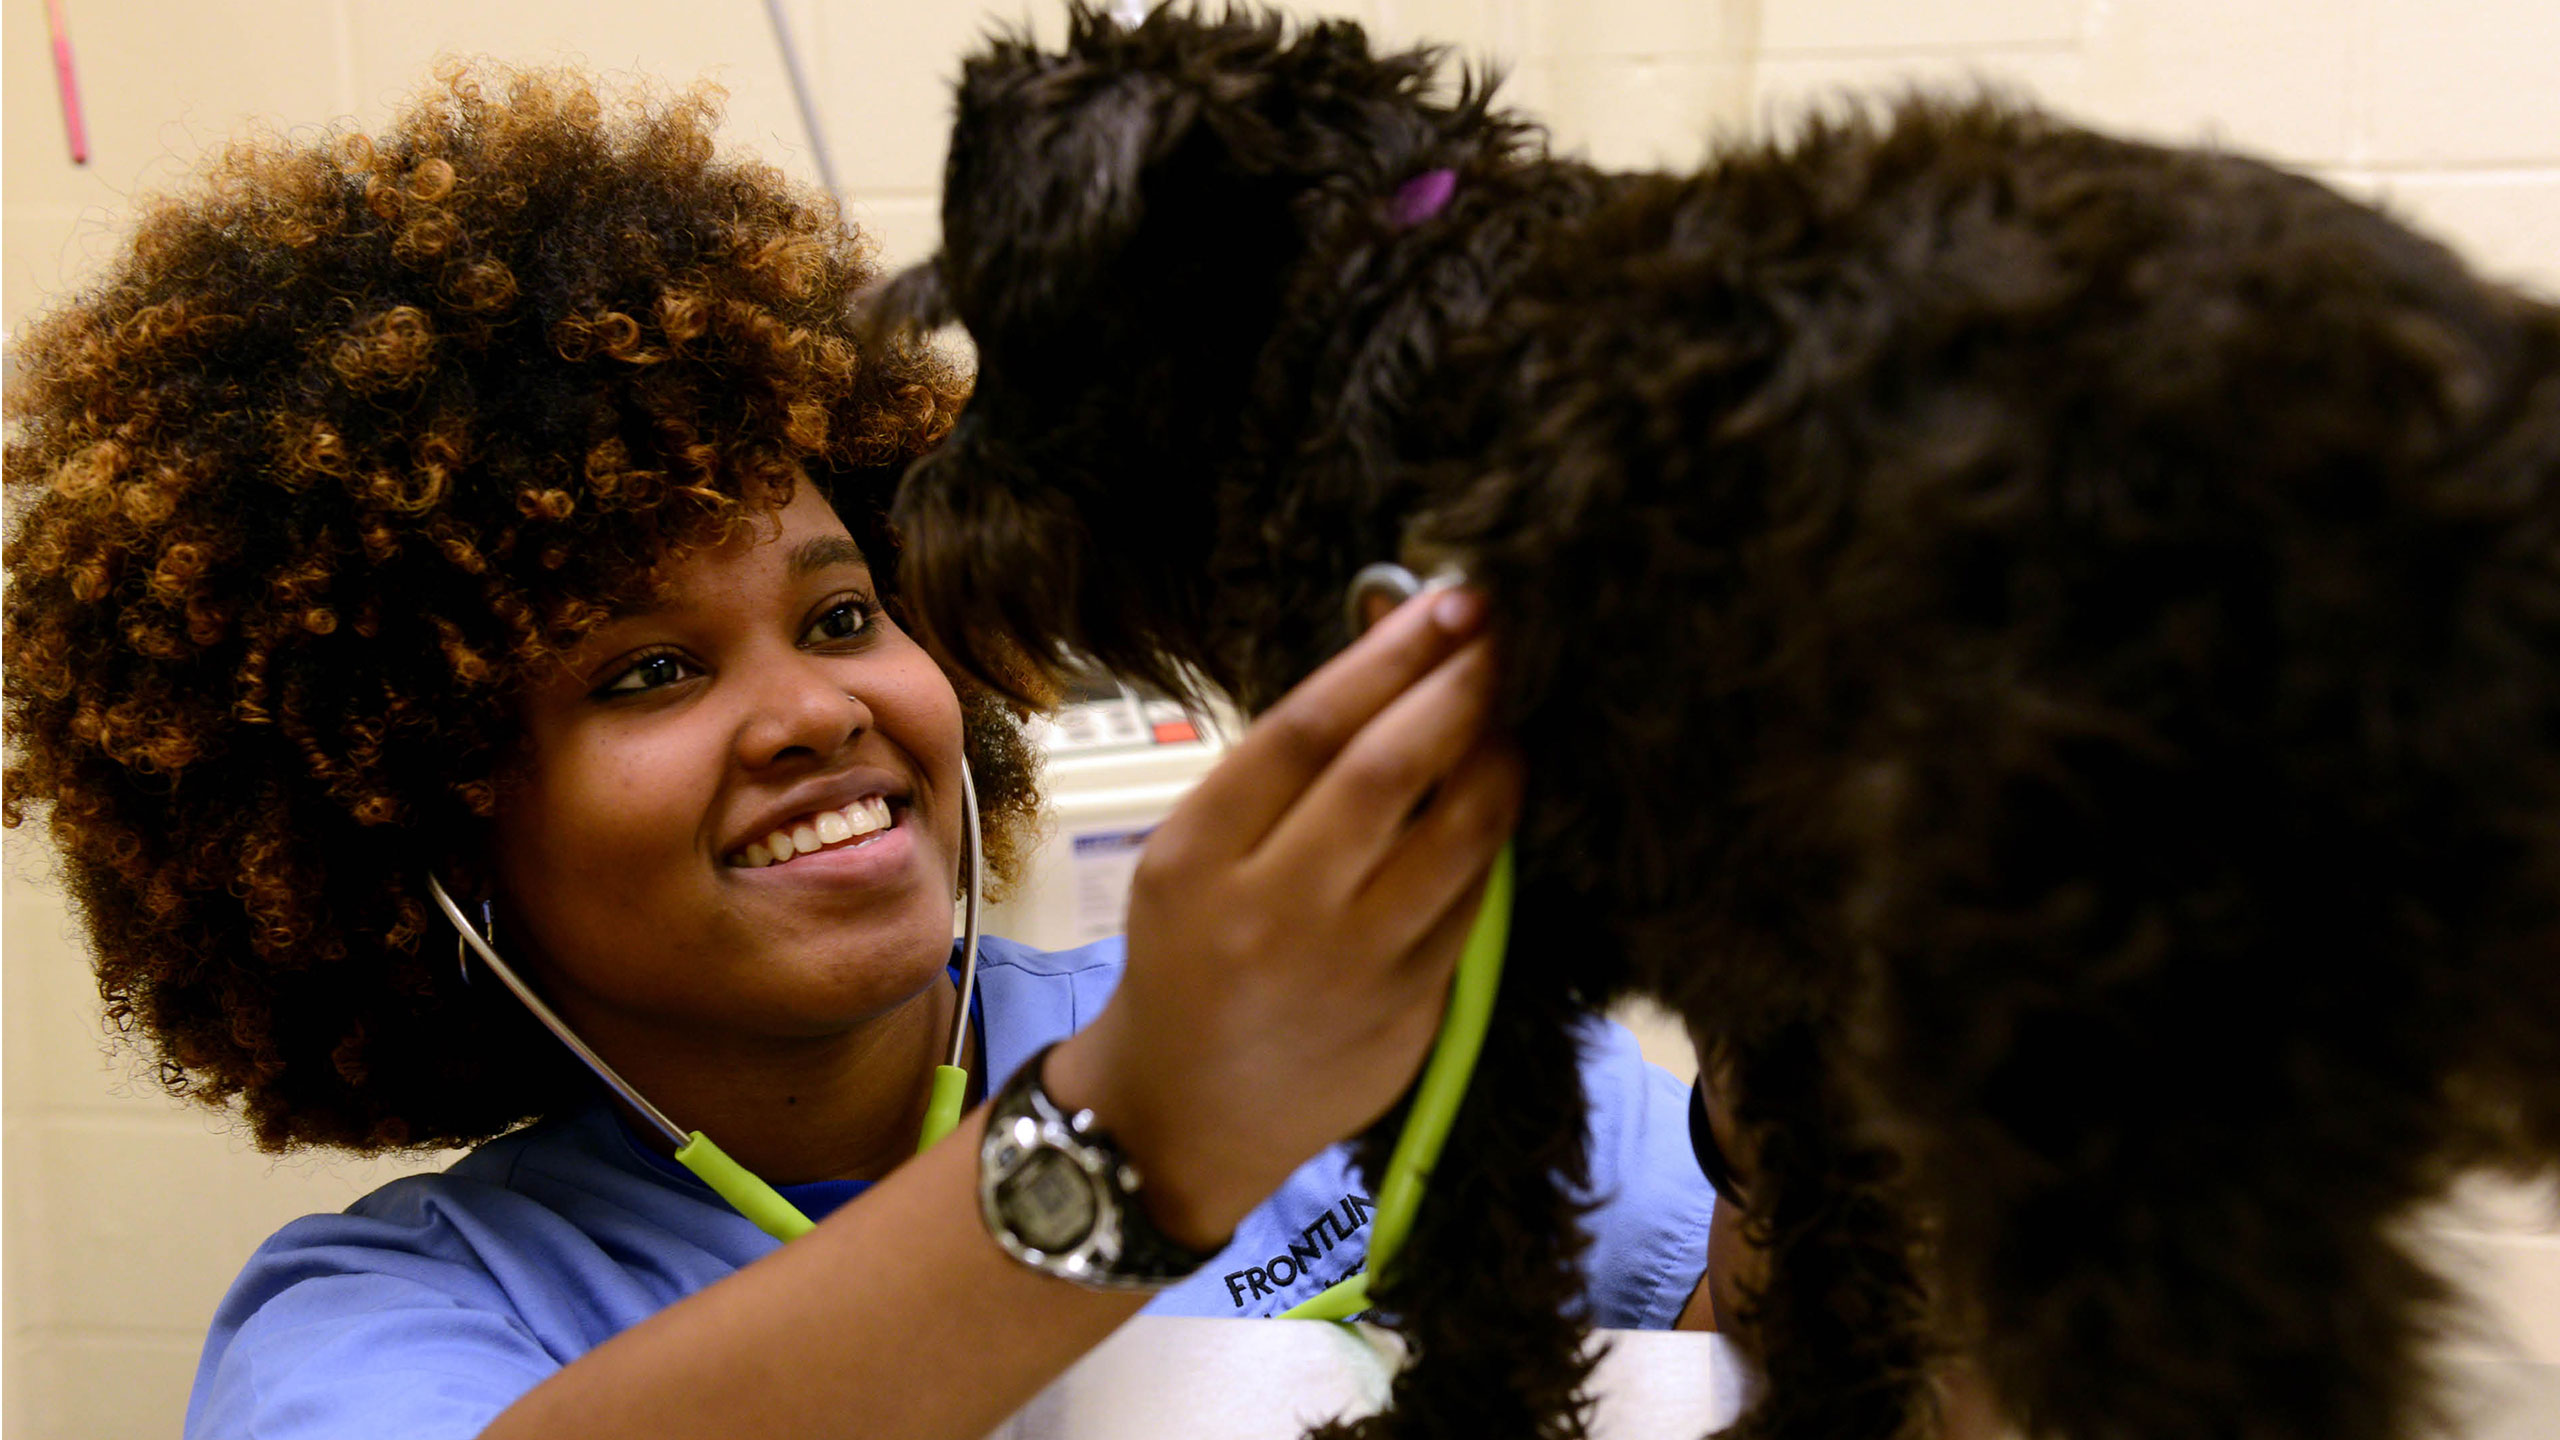 Veterinary Technology student with dog